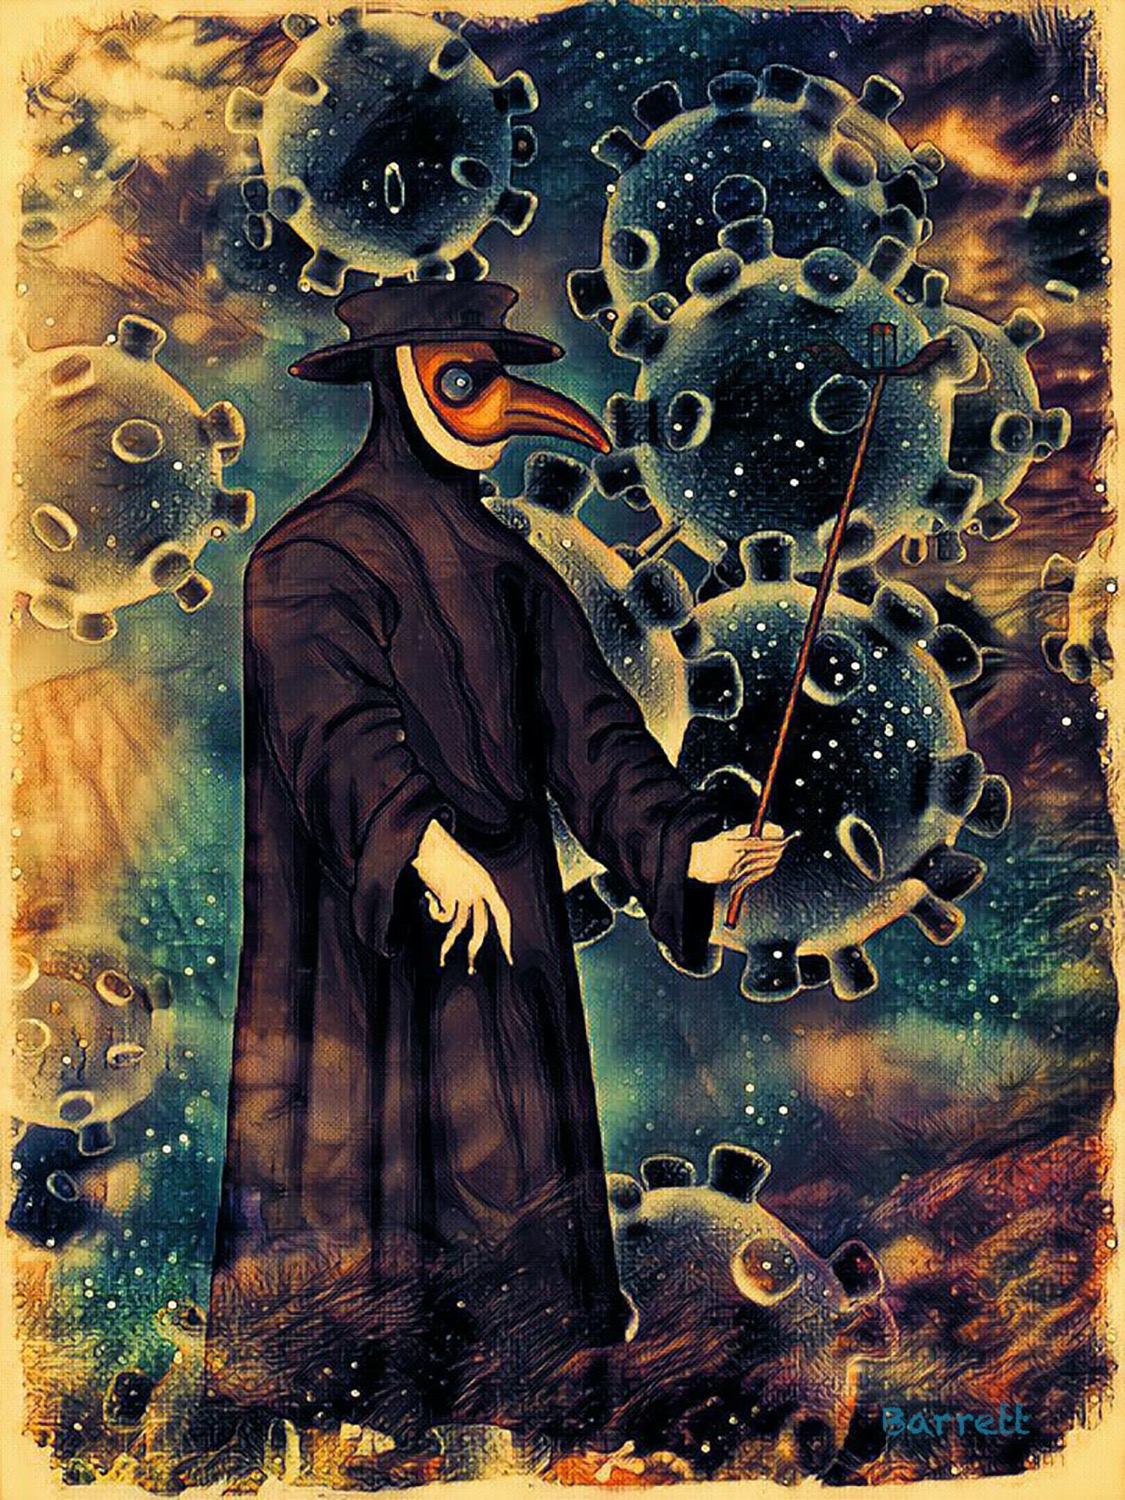 an abstract painting of an old time plague doctor with a bird mask with covid particles in the background